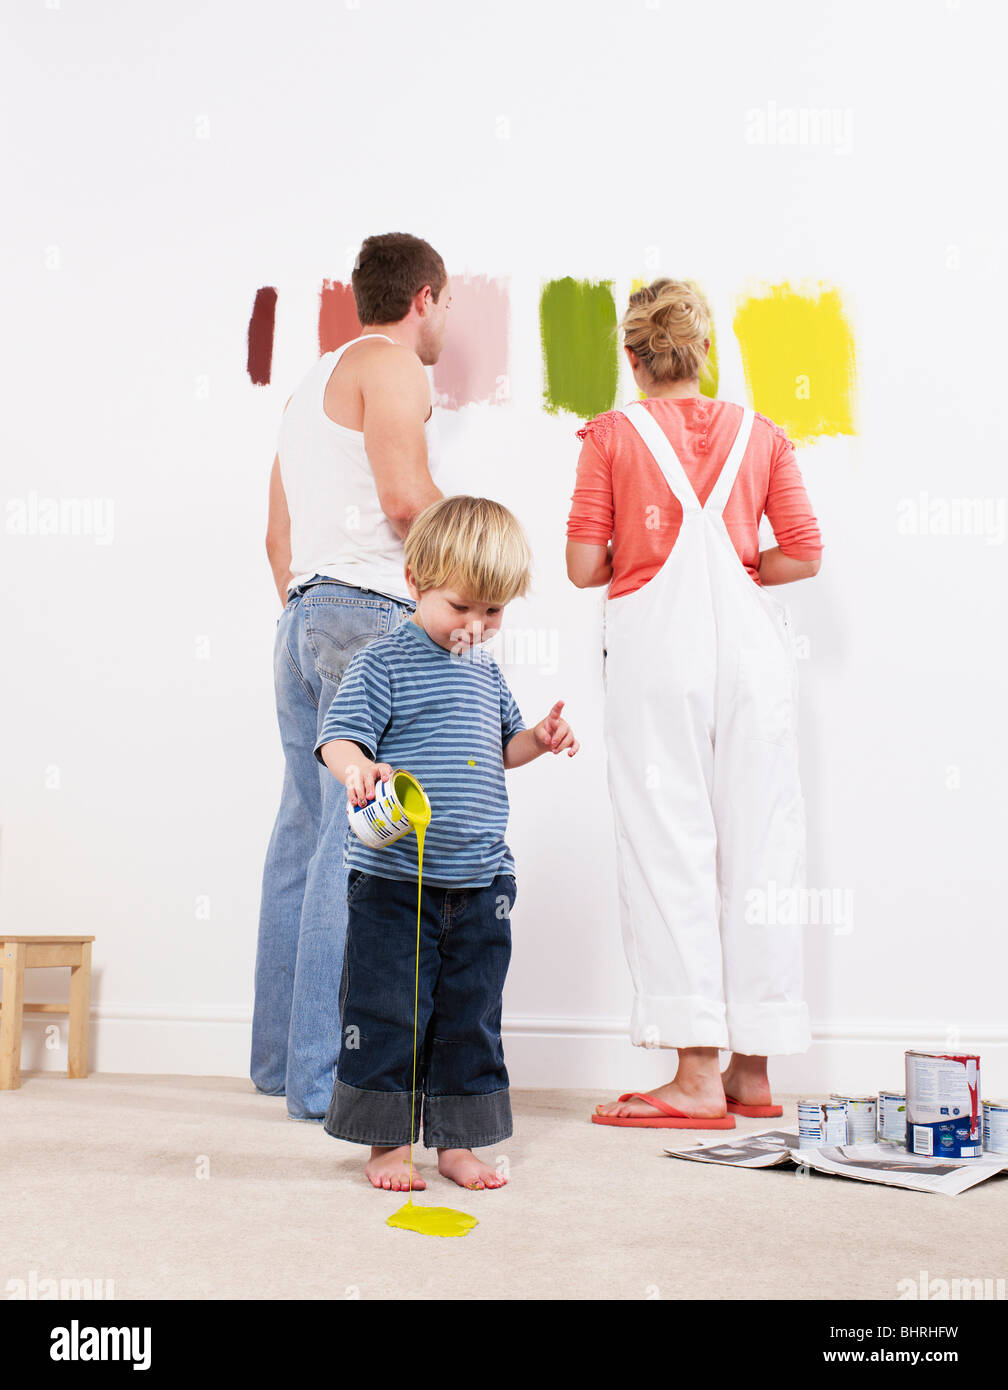 Toddler boy pouring paint on carpet - Stock Image